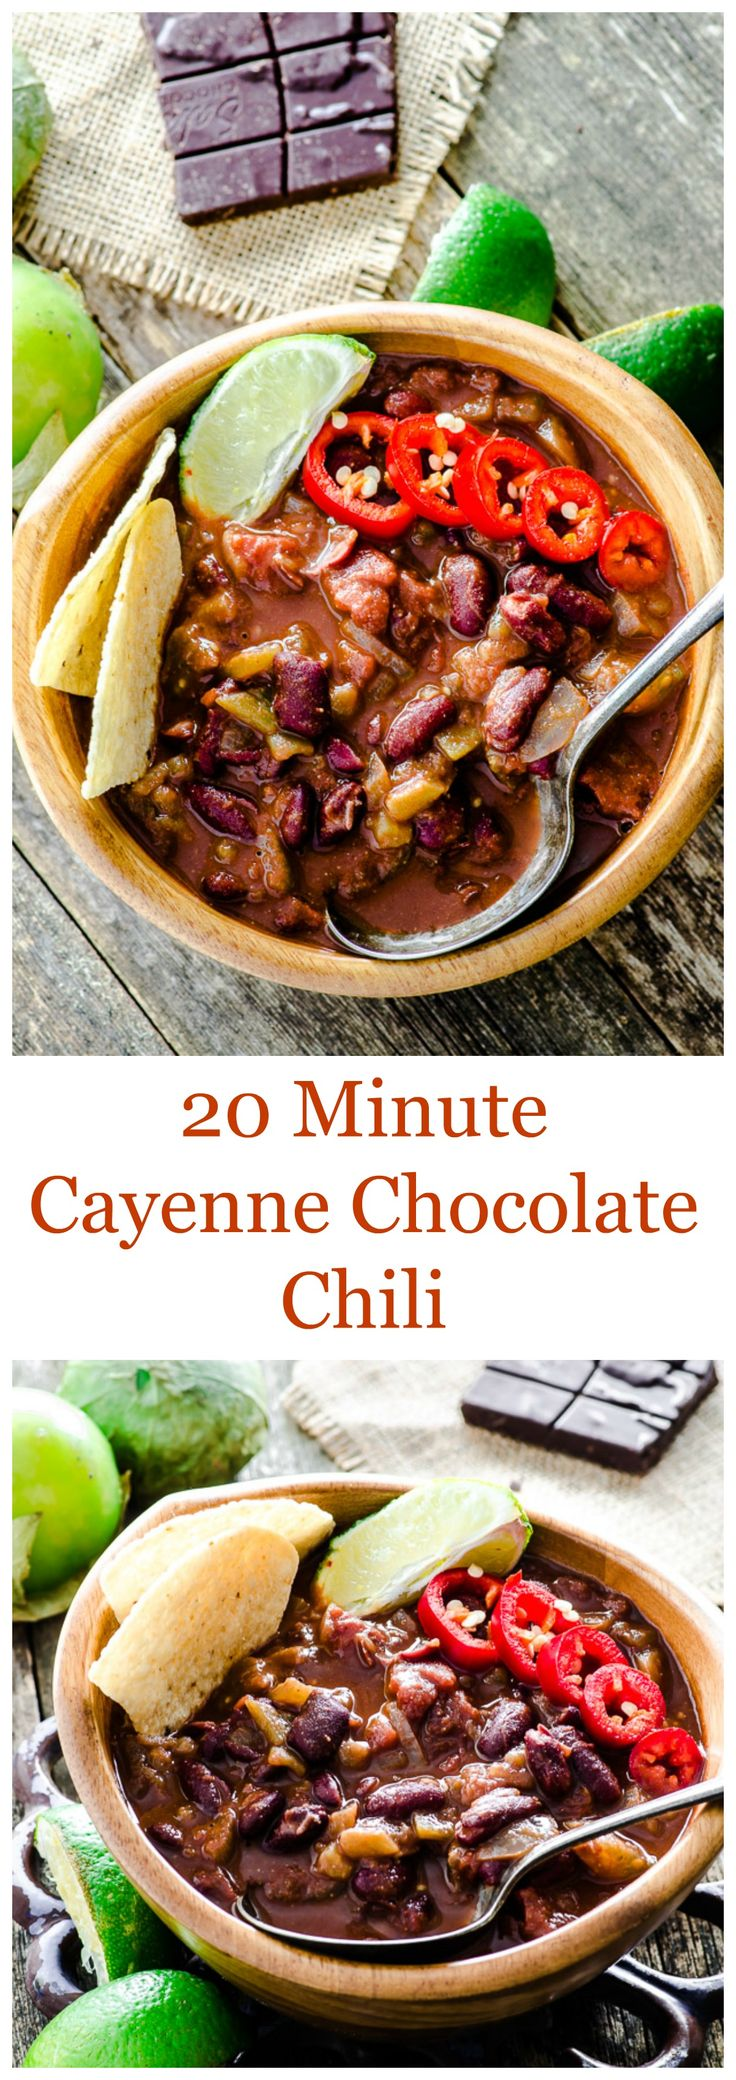 20 Minute Cayenne Chocolate Chili